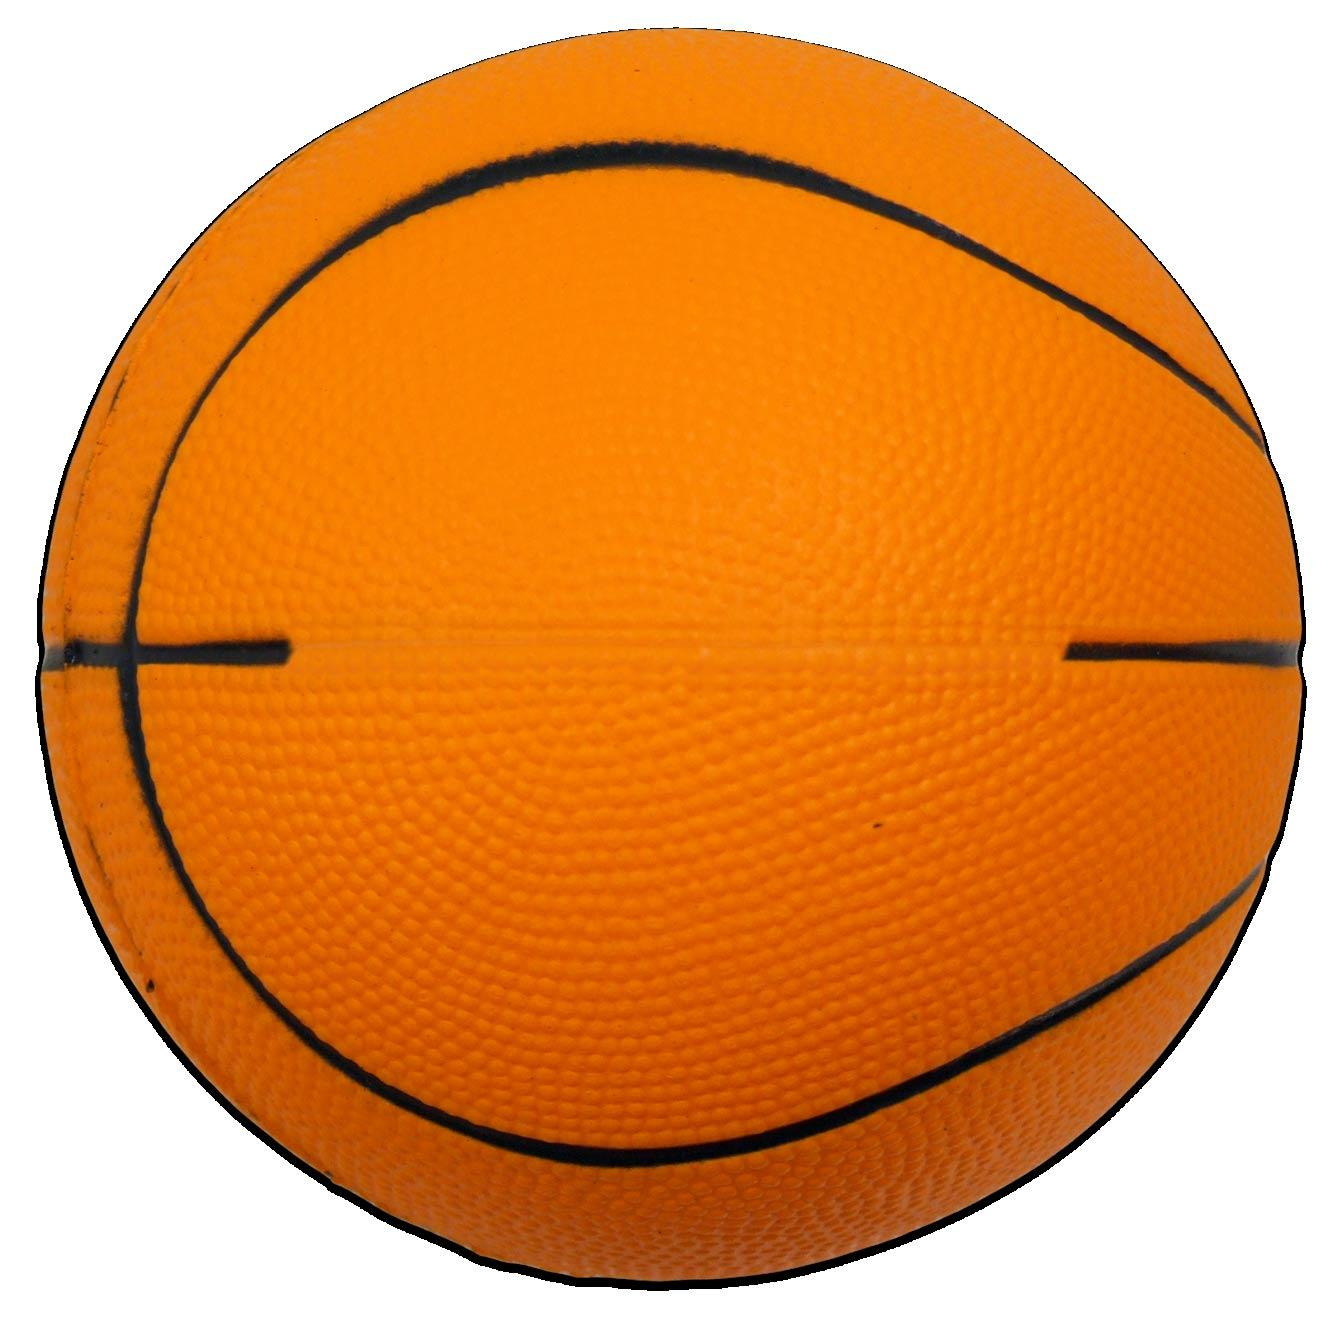 1 fan clipart basketballball image transparent stock Pics Of Basketballs | Free download best Pics Of Basketballs on ... image transparent stock